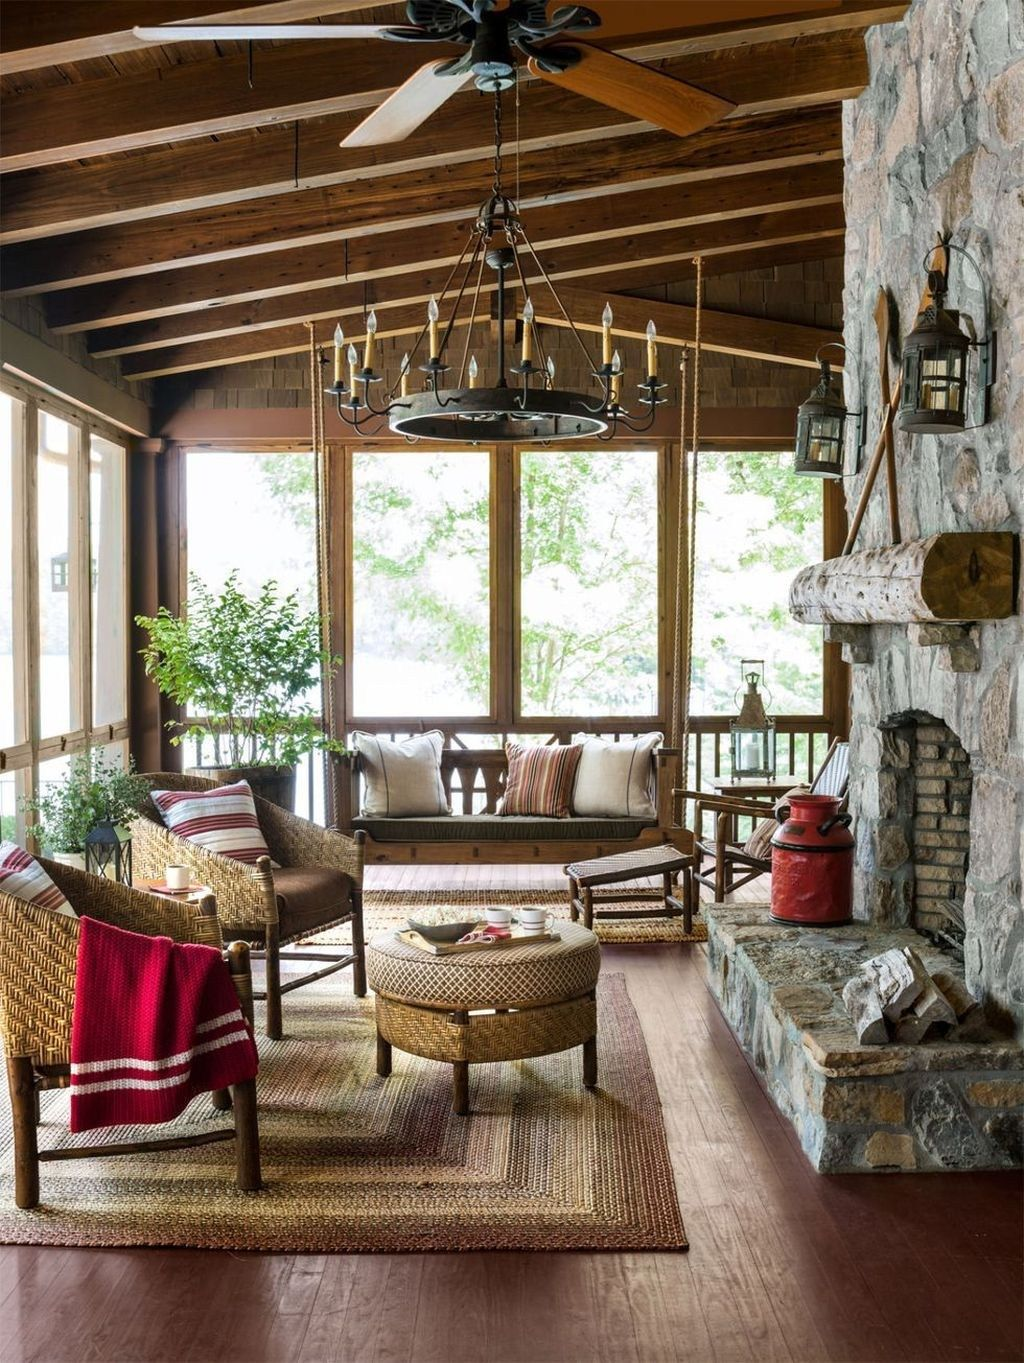 40 Best Rustic Porch Ideas To Decorate Your Beautiful Backyard #rusticporchideas